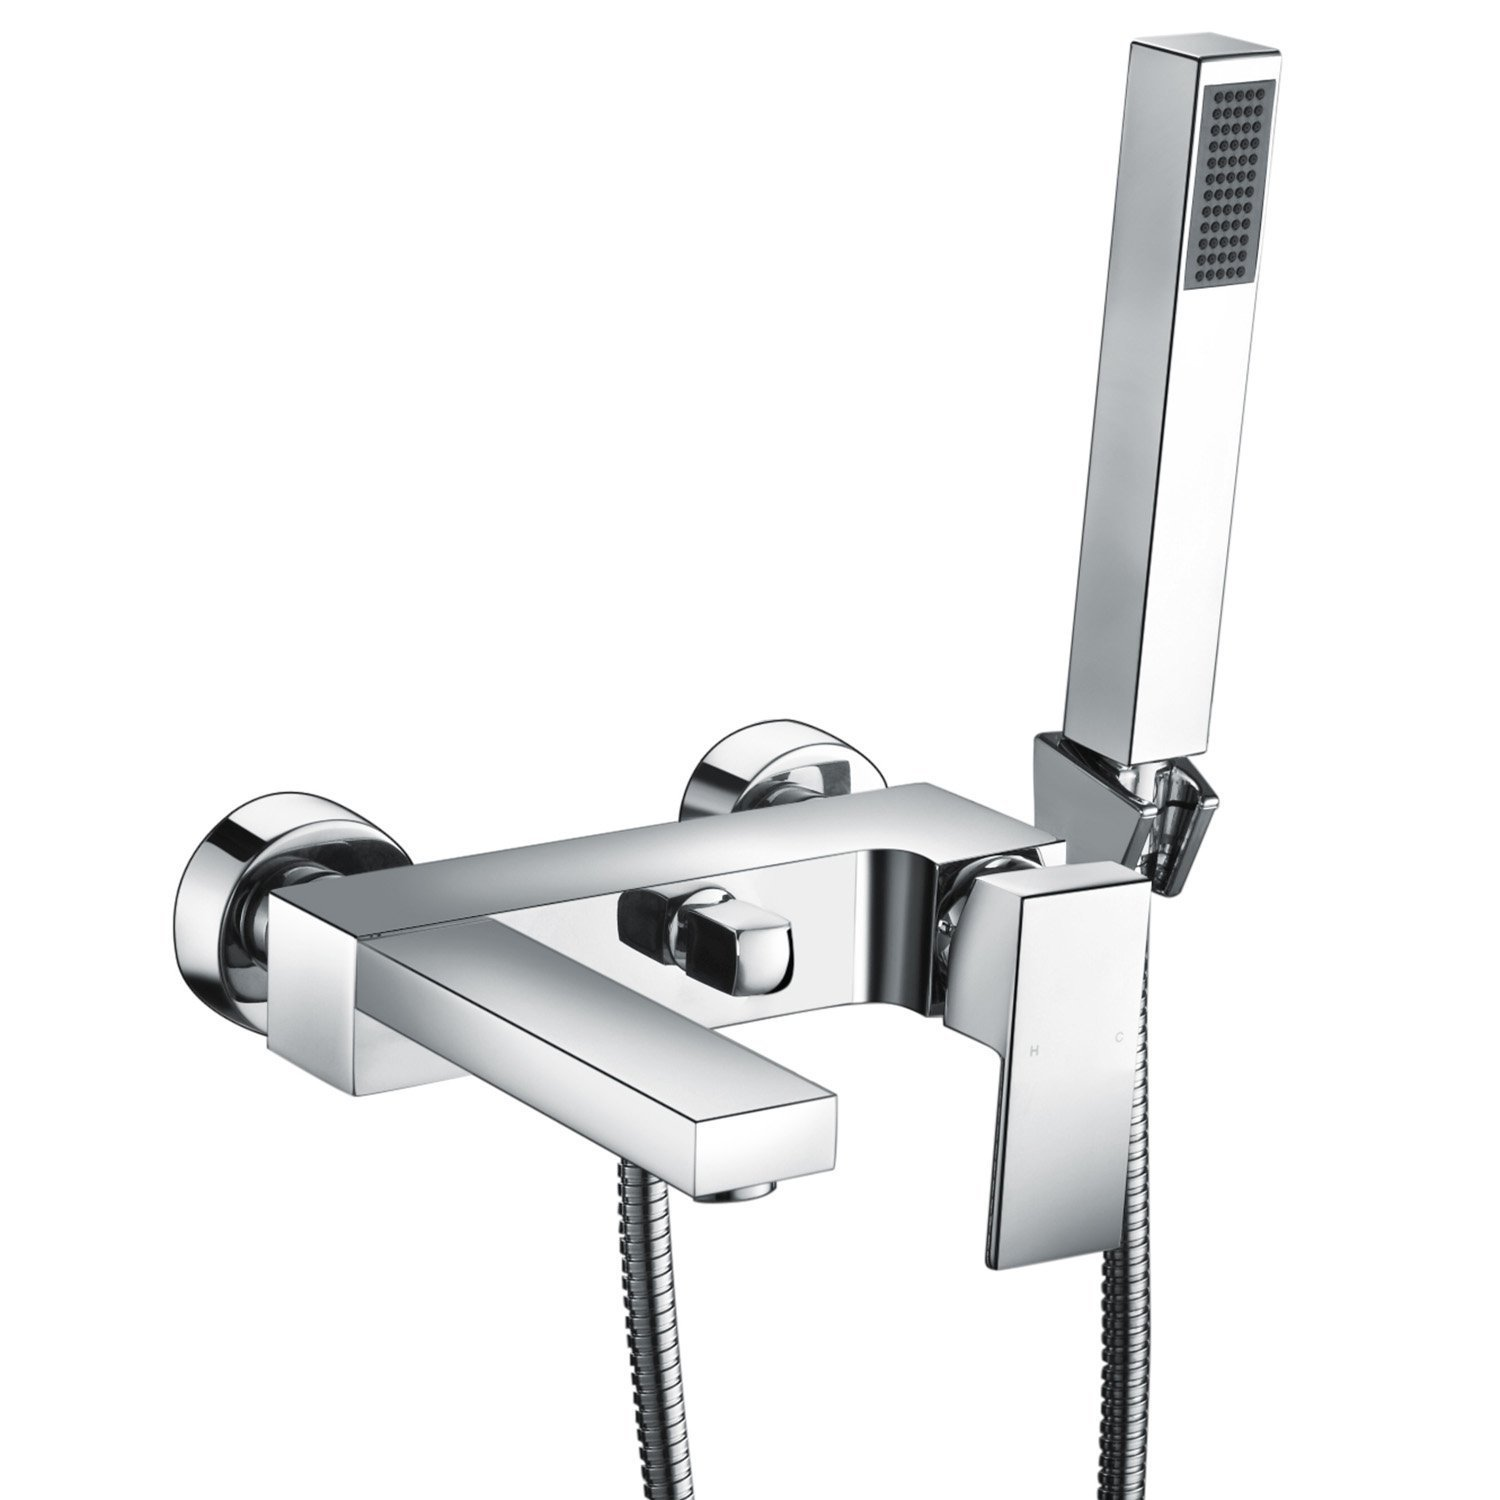 Nt10l Wall Mounted Square Bath Taps with Shower Bathroom Shower Taps Chrome Brass